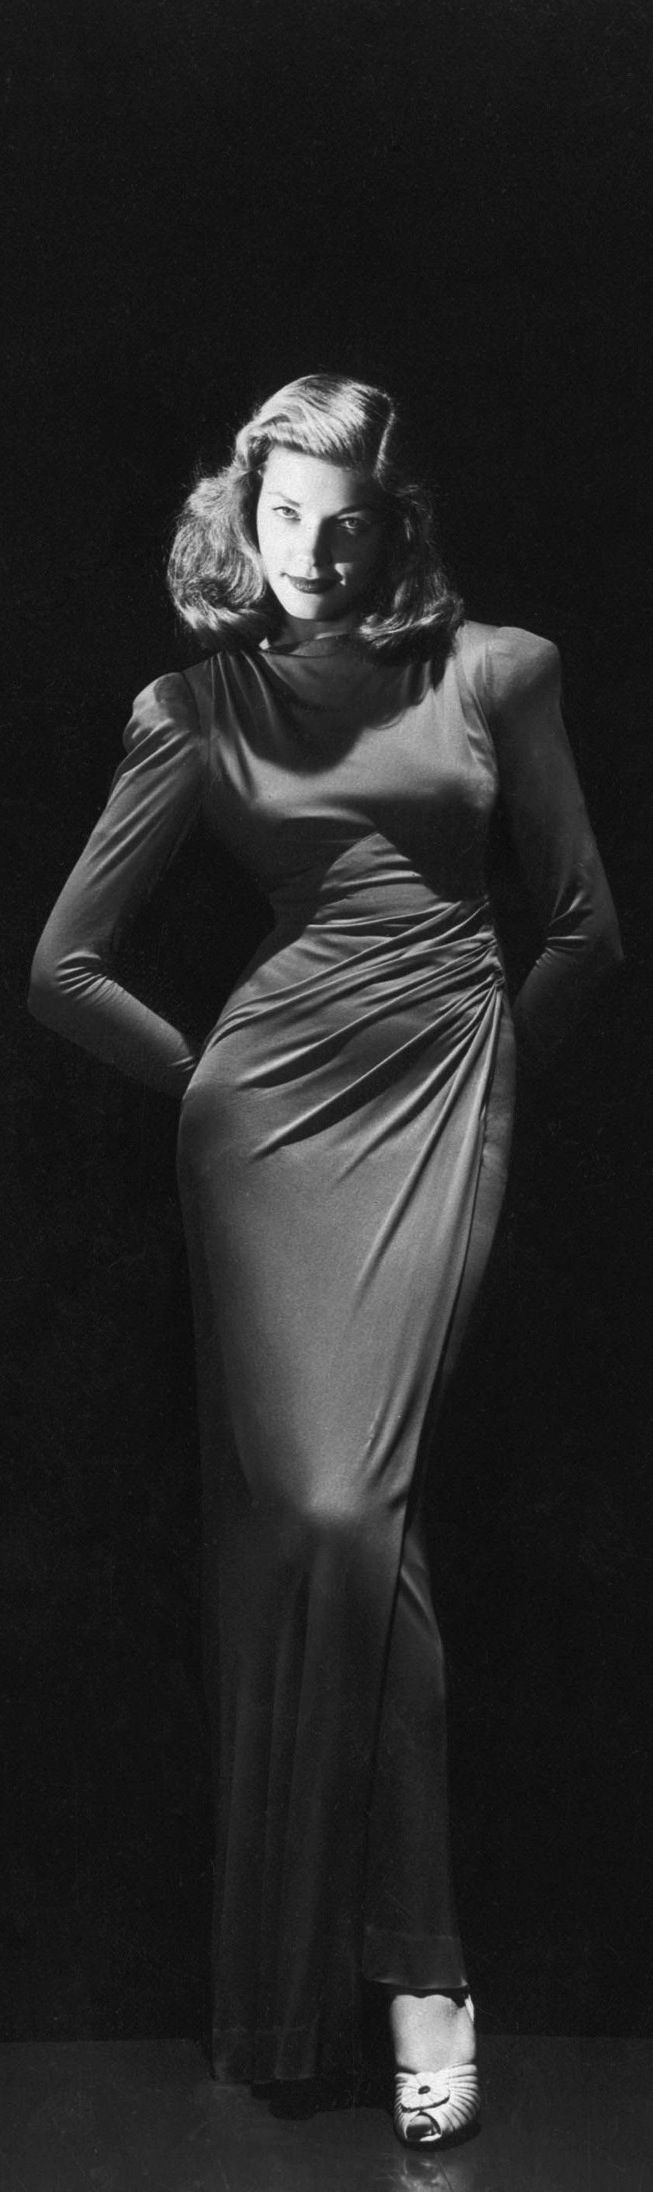 A great photo of Lauren Bacall!